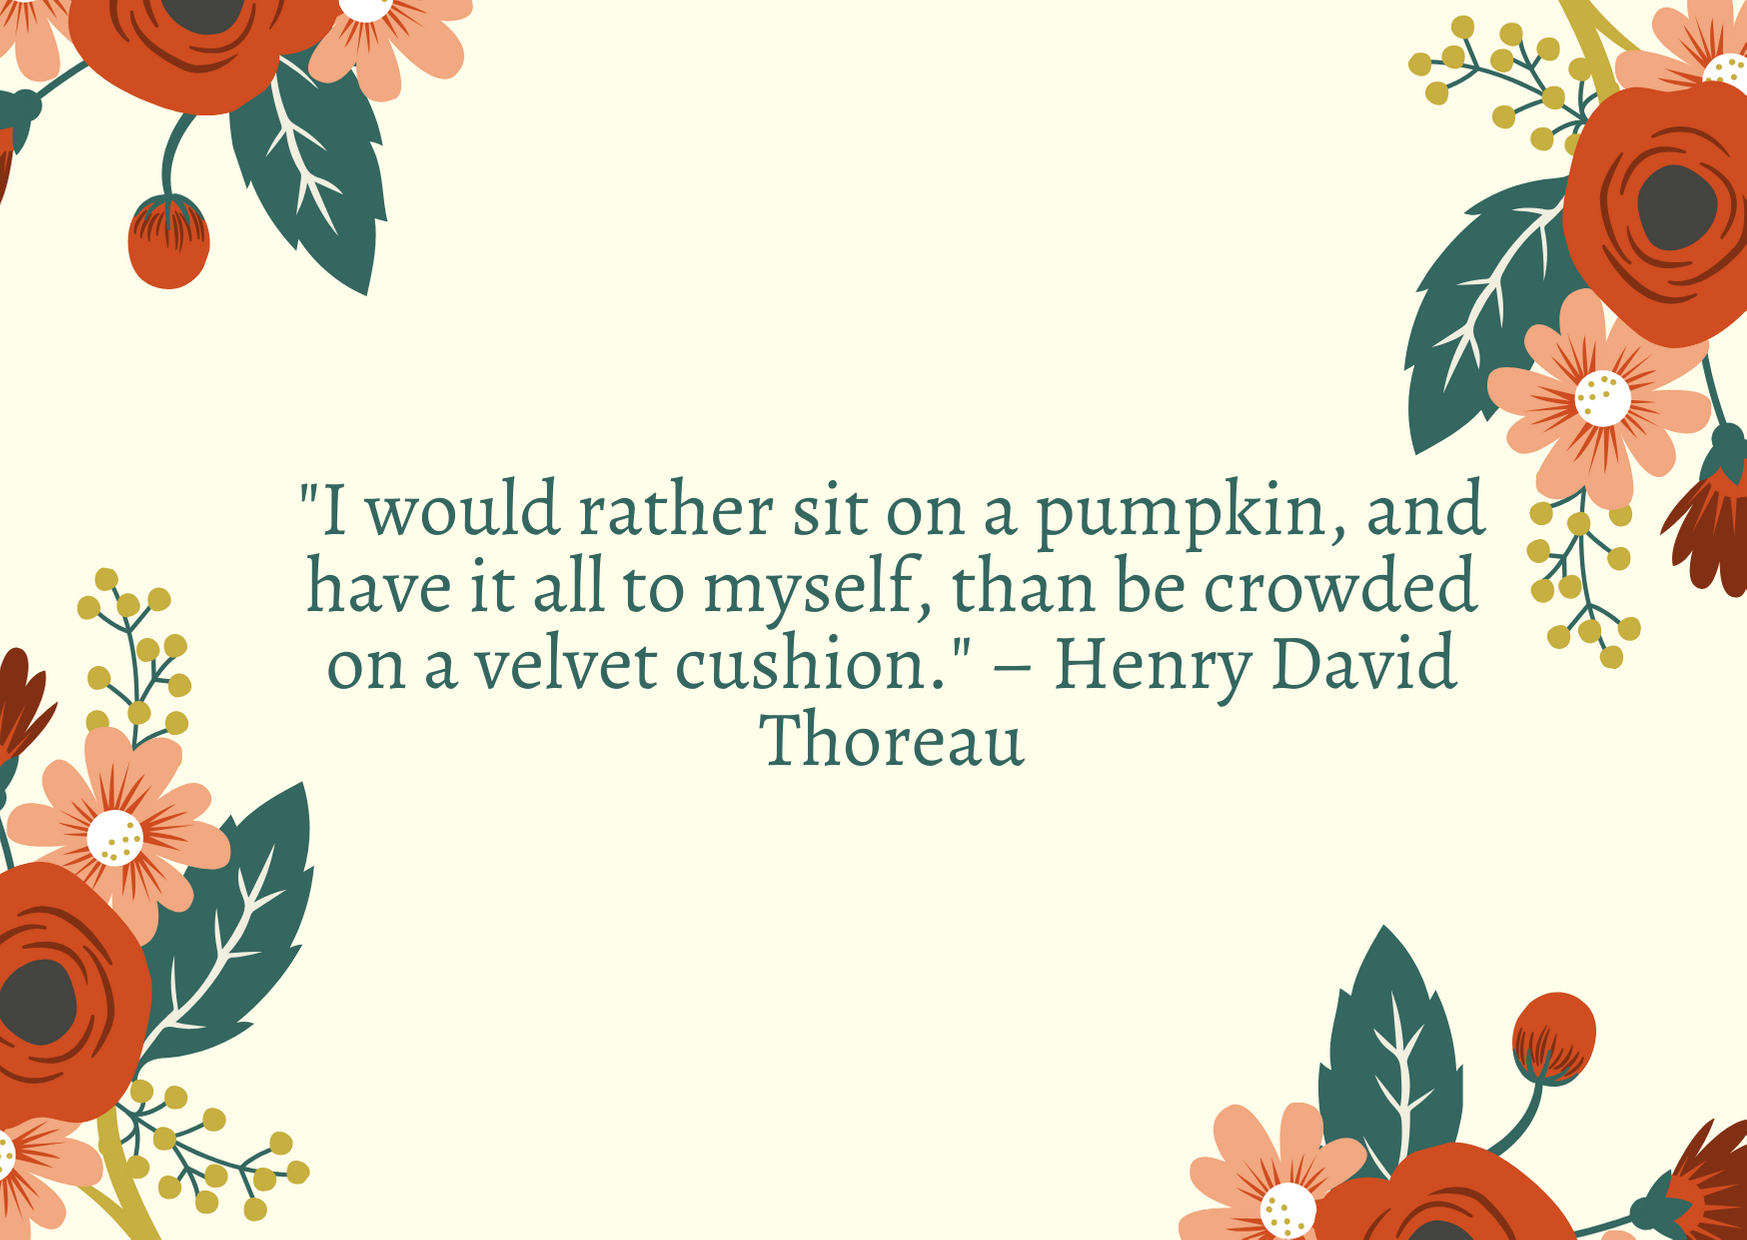 """I would rather sit on a pumpkin, and have it all to myself, than be crowded on a velvet cushion."" – Henry David Thoreau"